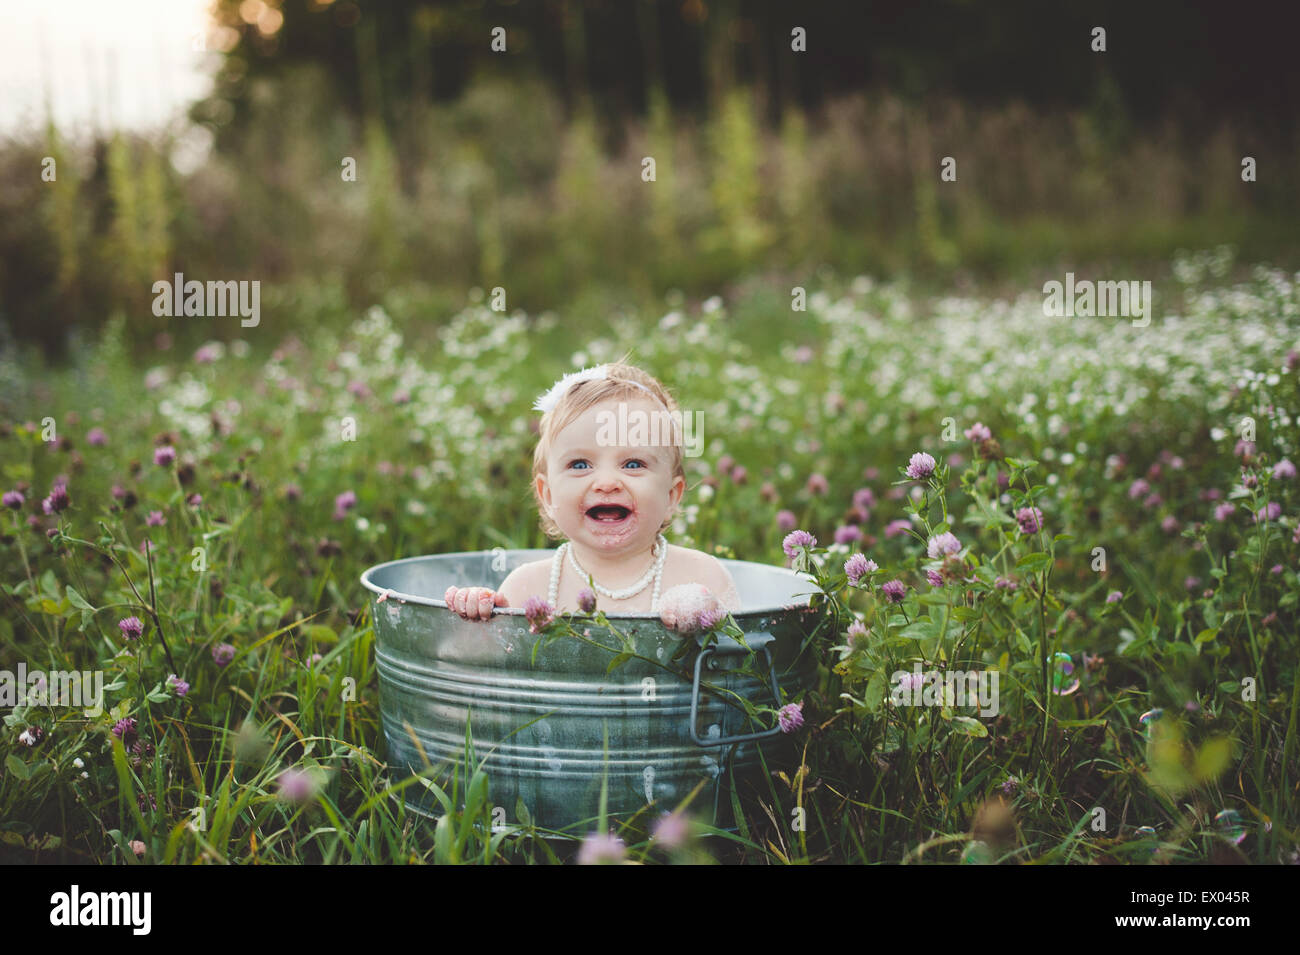 Baby girl bathing in a tin bathtub in a wild flower meadow Stock Photo